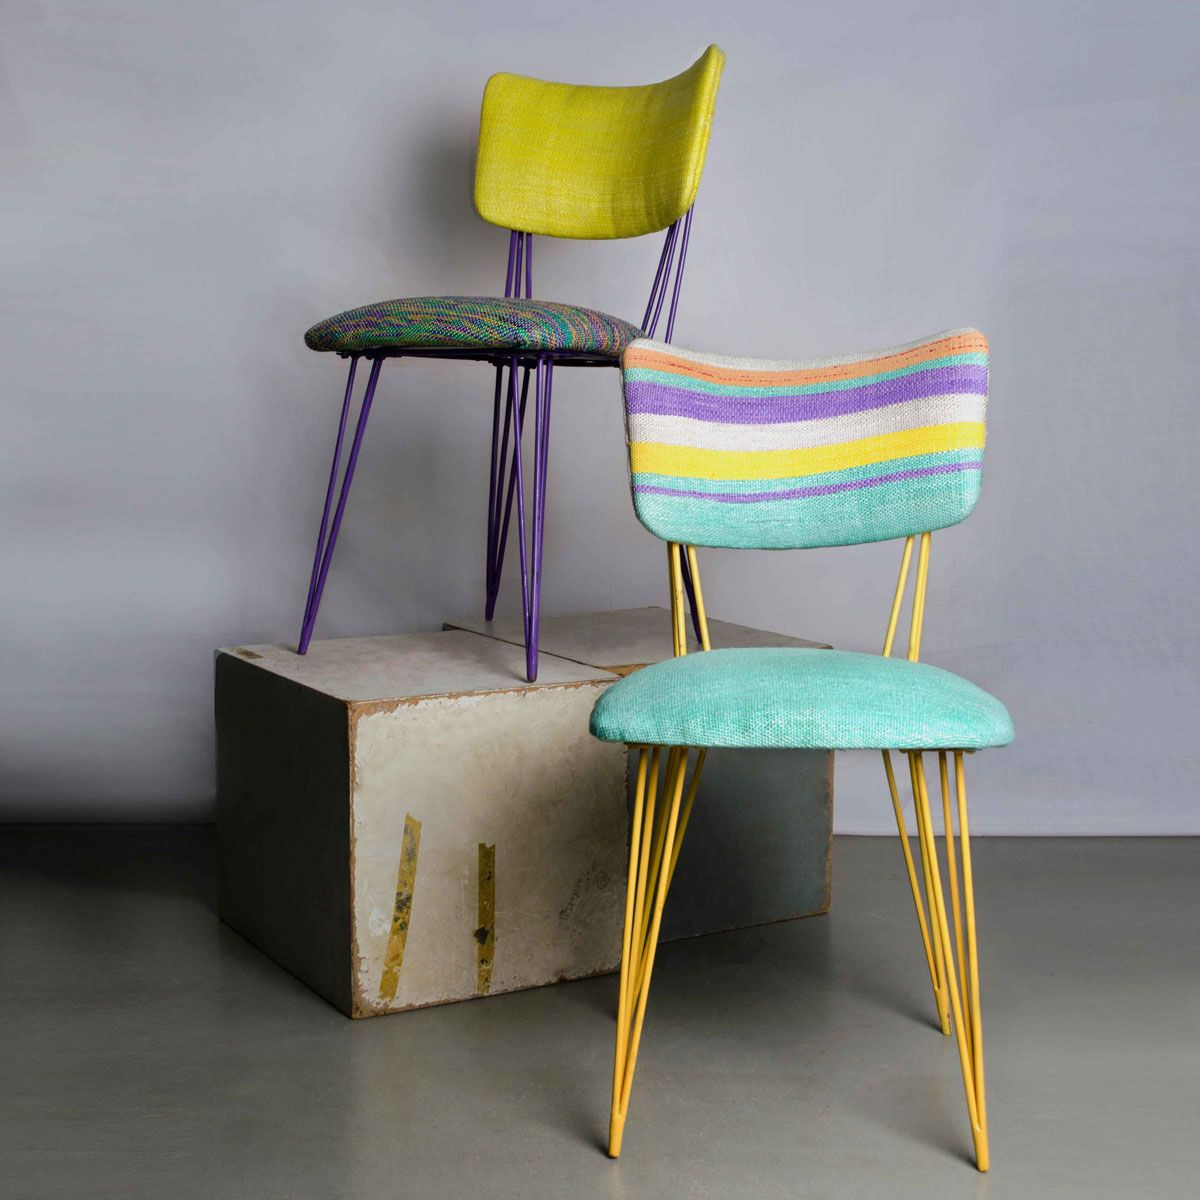 Reused Furniture grammy's collection | reform studio (cairo, egypt) | the chairs